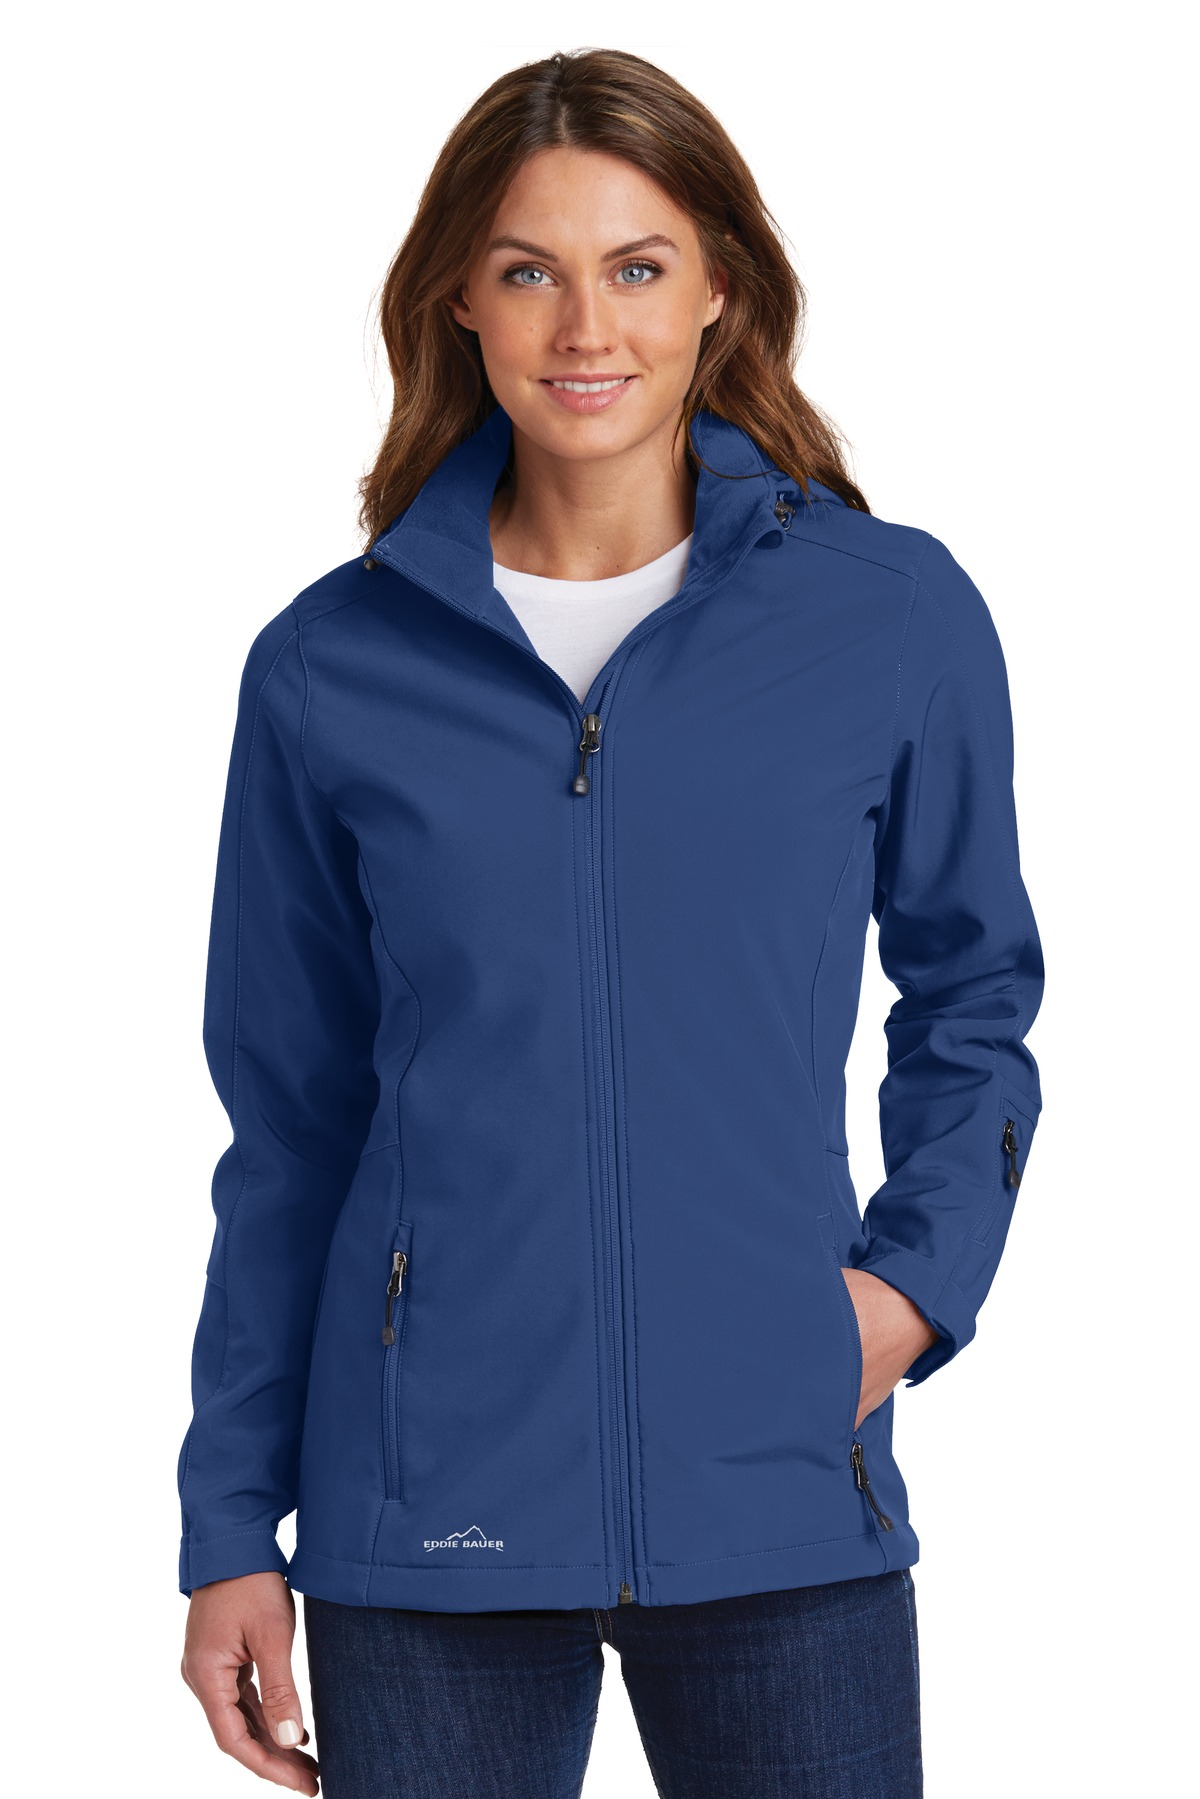 Eddie Bauer  EB537 - Ladies Hooded Soft Shell Parka